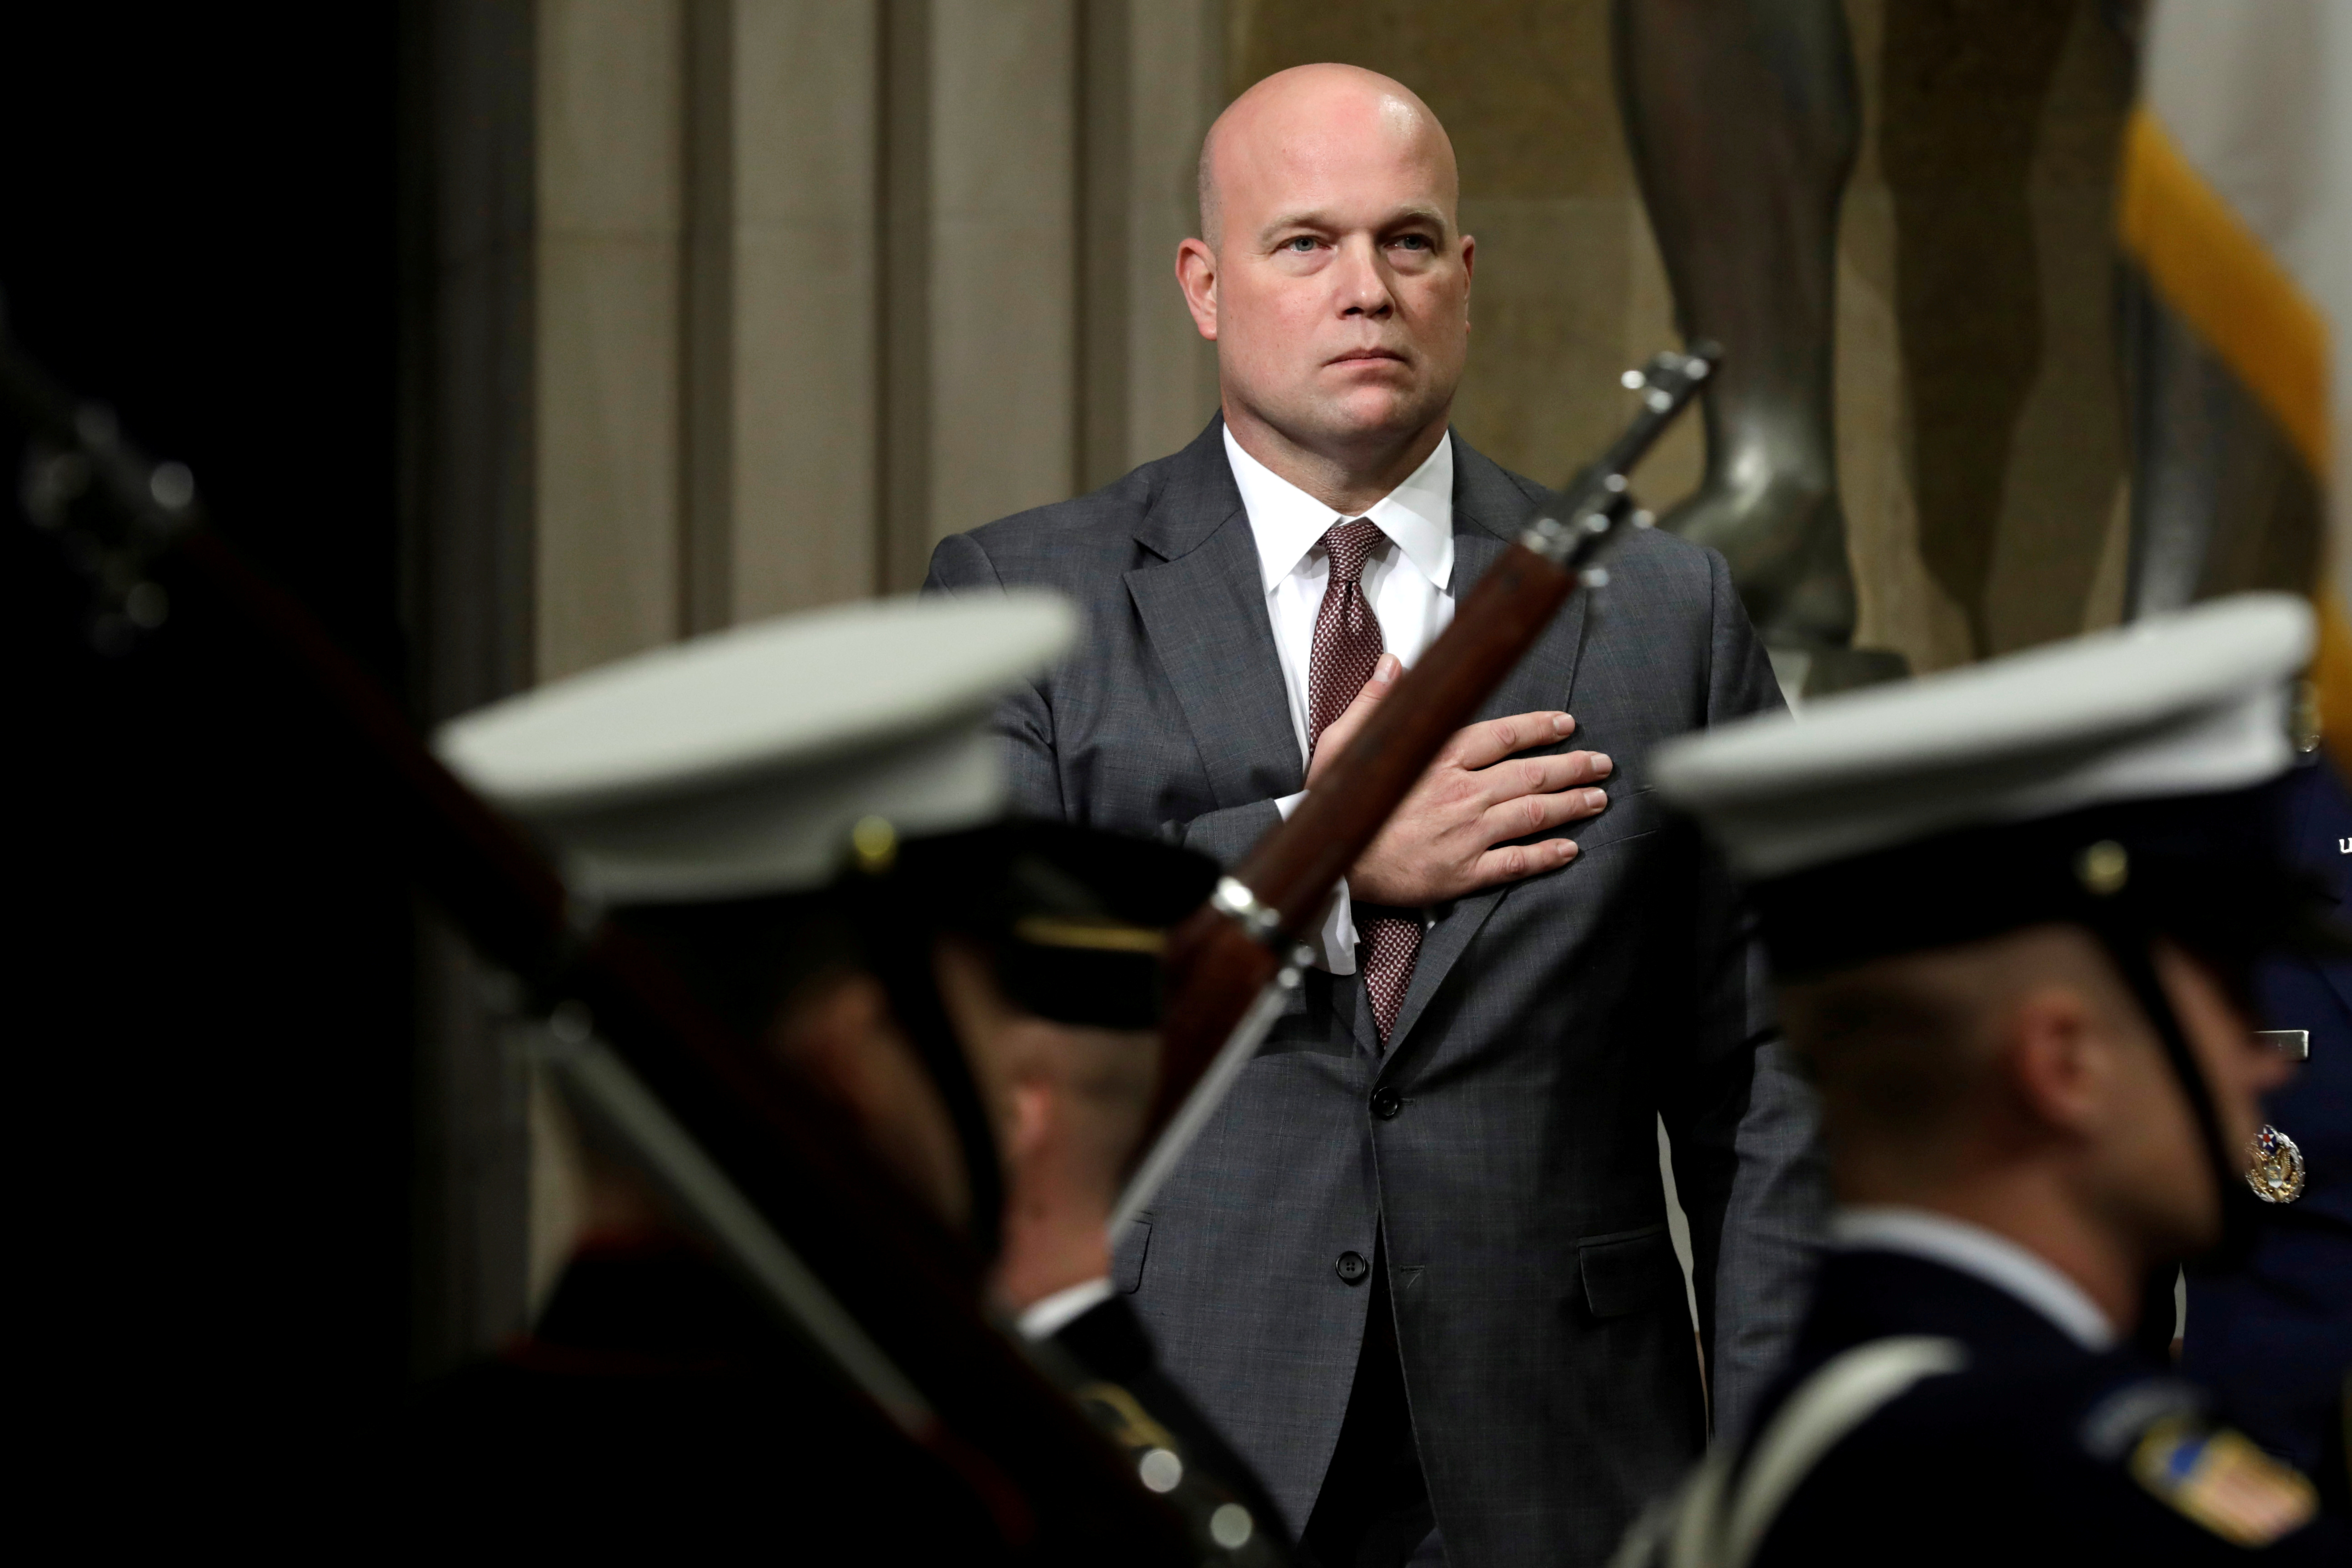 Acting Attorney General Matthew Whitaker stands during a presentation of the colors at the Annual Veterans Appreciation Day Ceremony at the Justice Department in Washington. REUTERS/Yuri Gripas